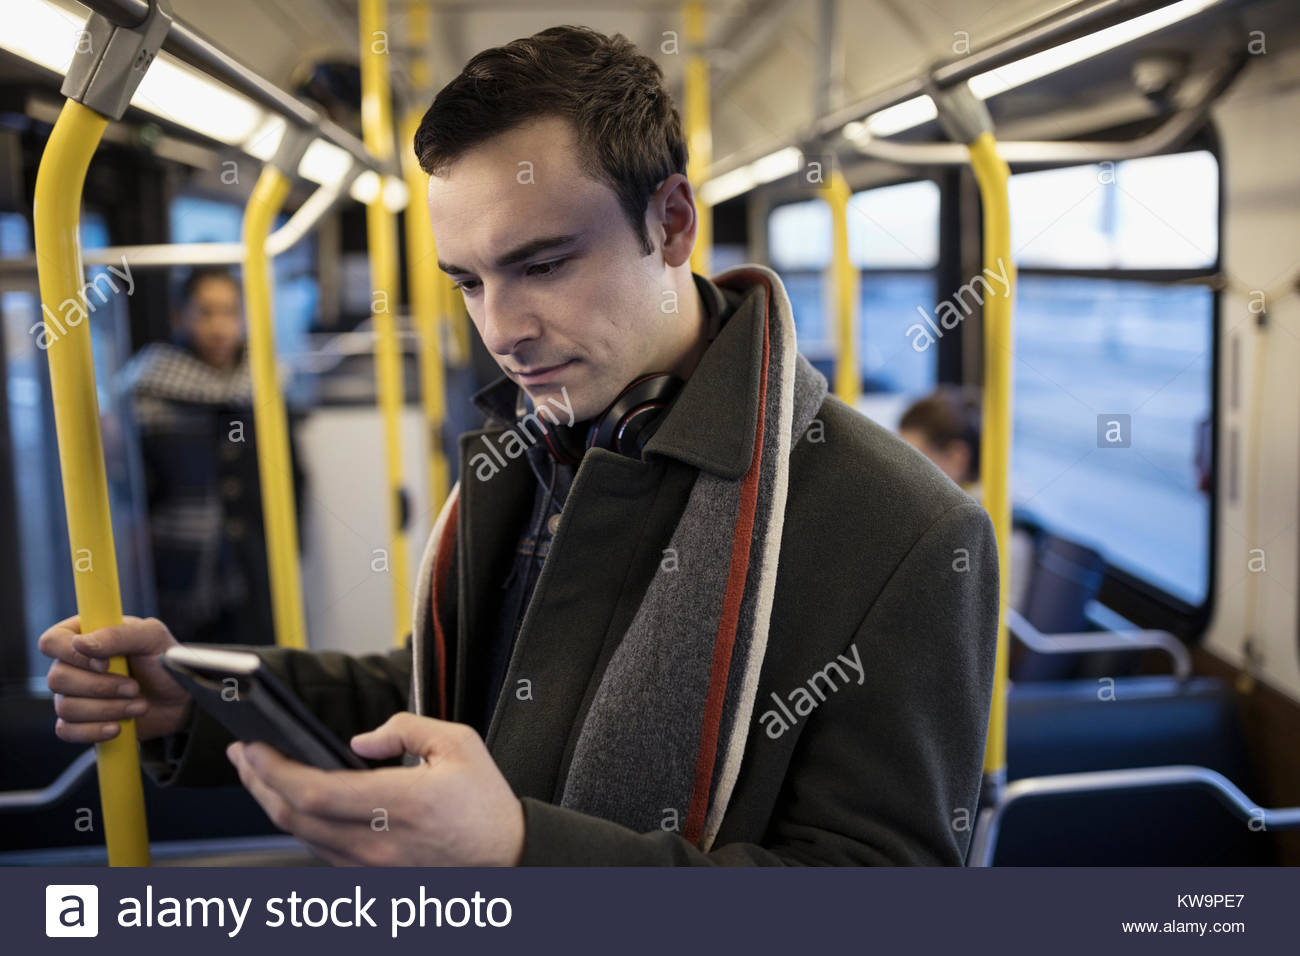 Businessman commuter texting with smart phone on bus - Stock Image